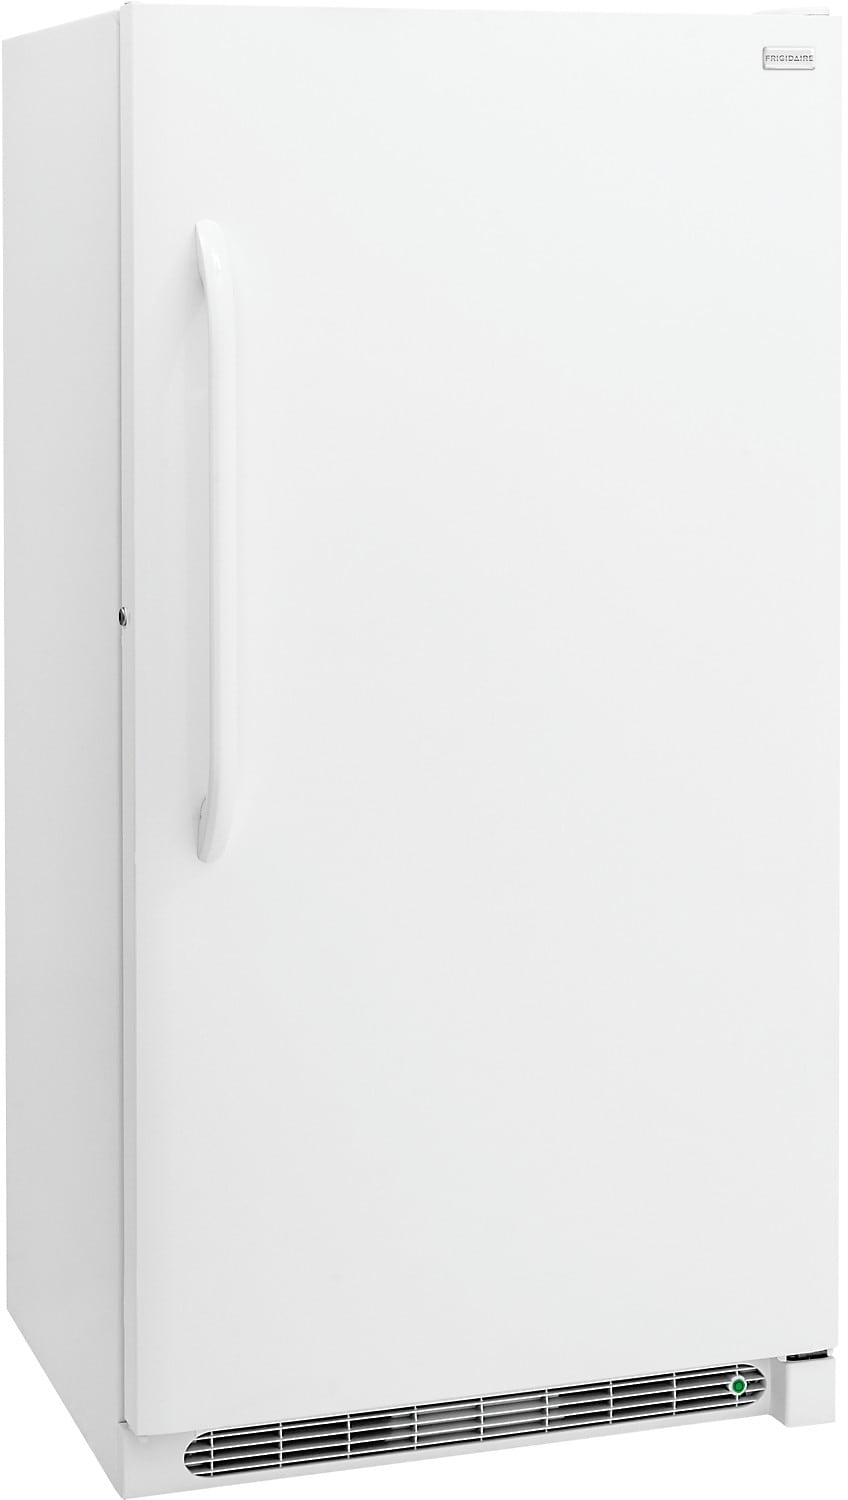 Frigidaire 20.2 Cu. Ft. Frost-Free Upright Freezer - White